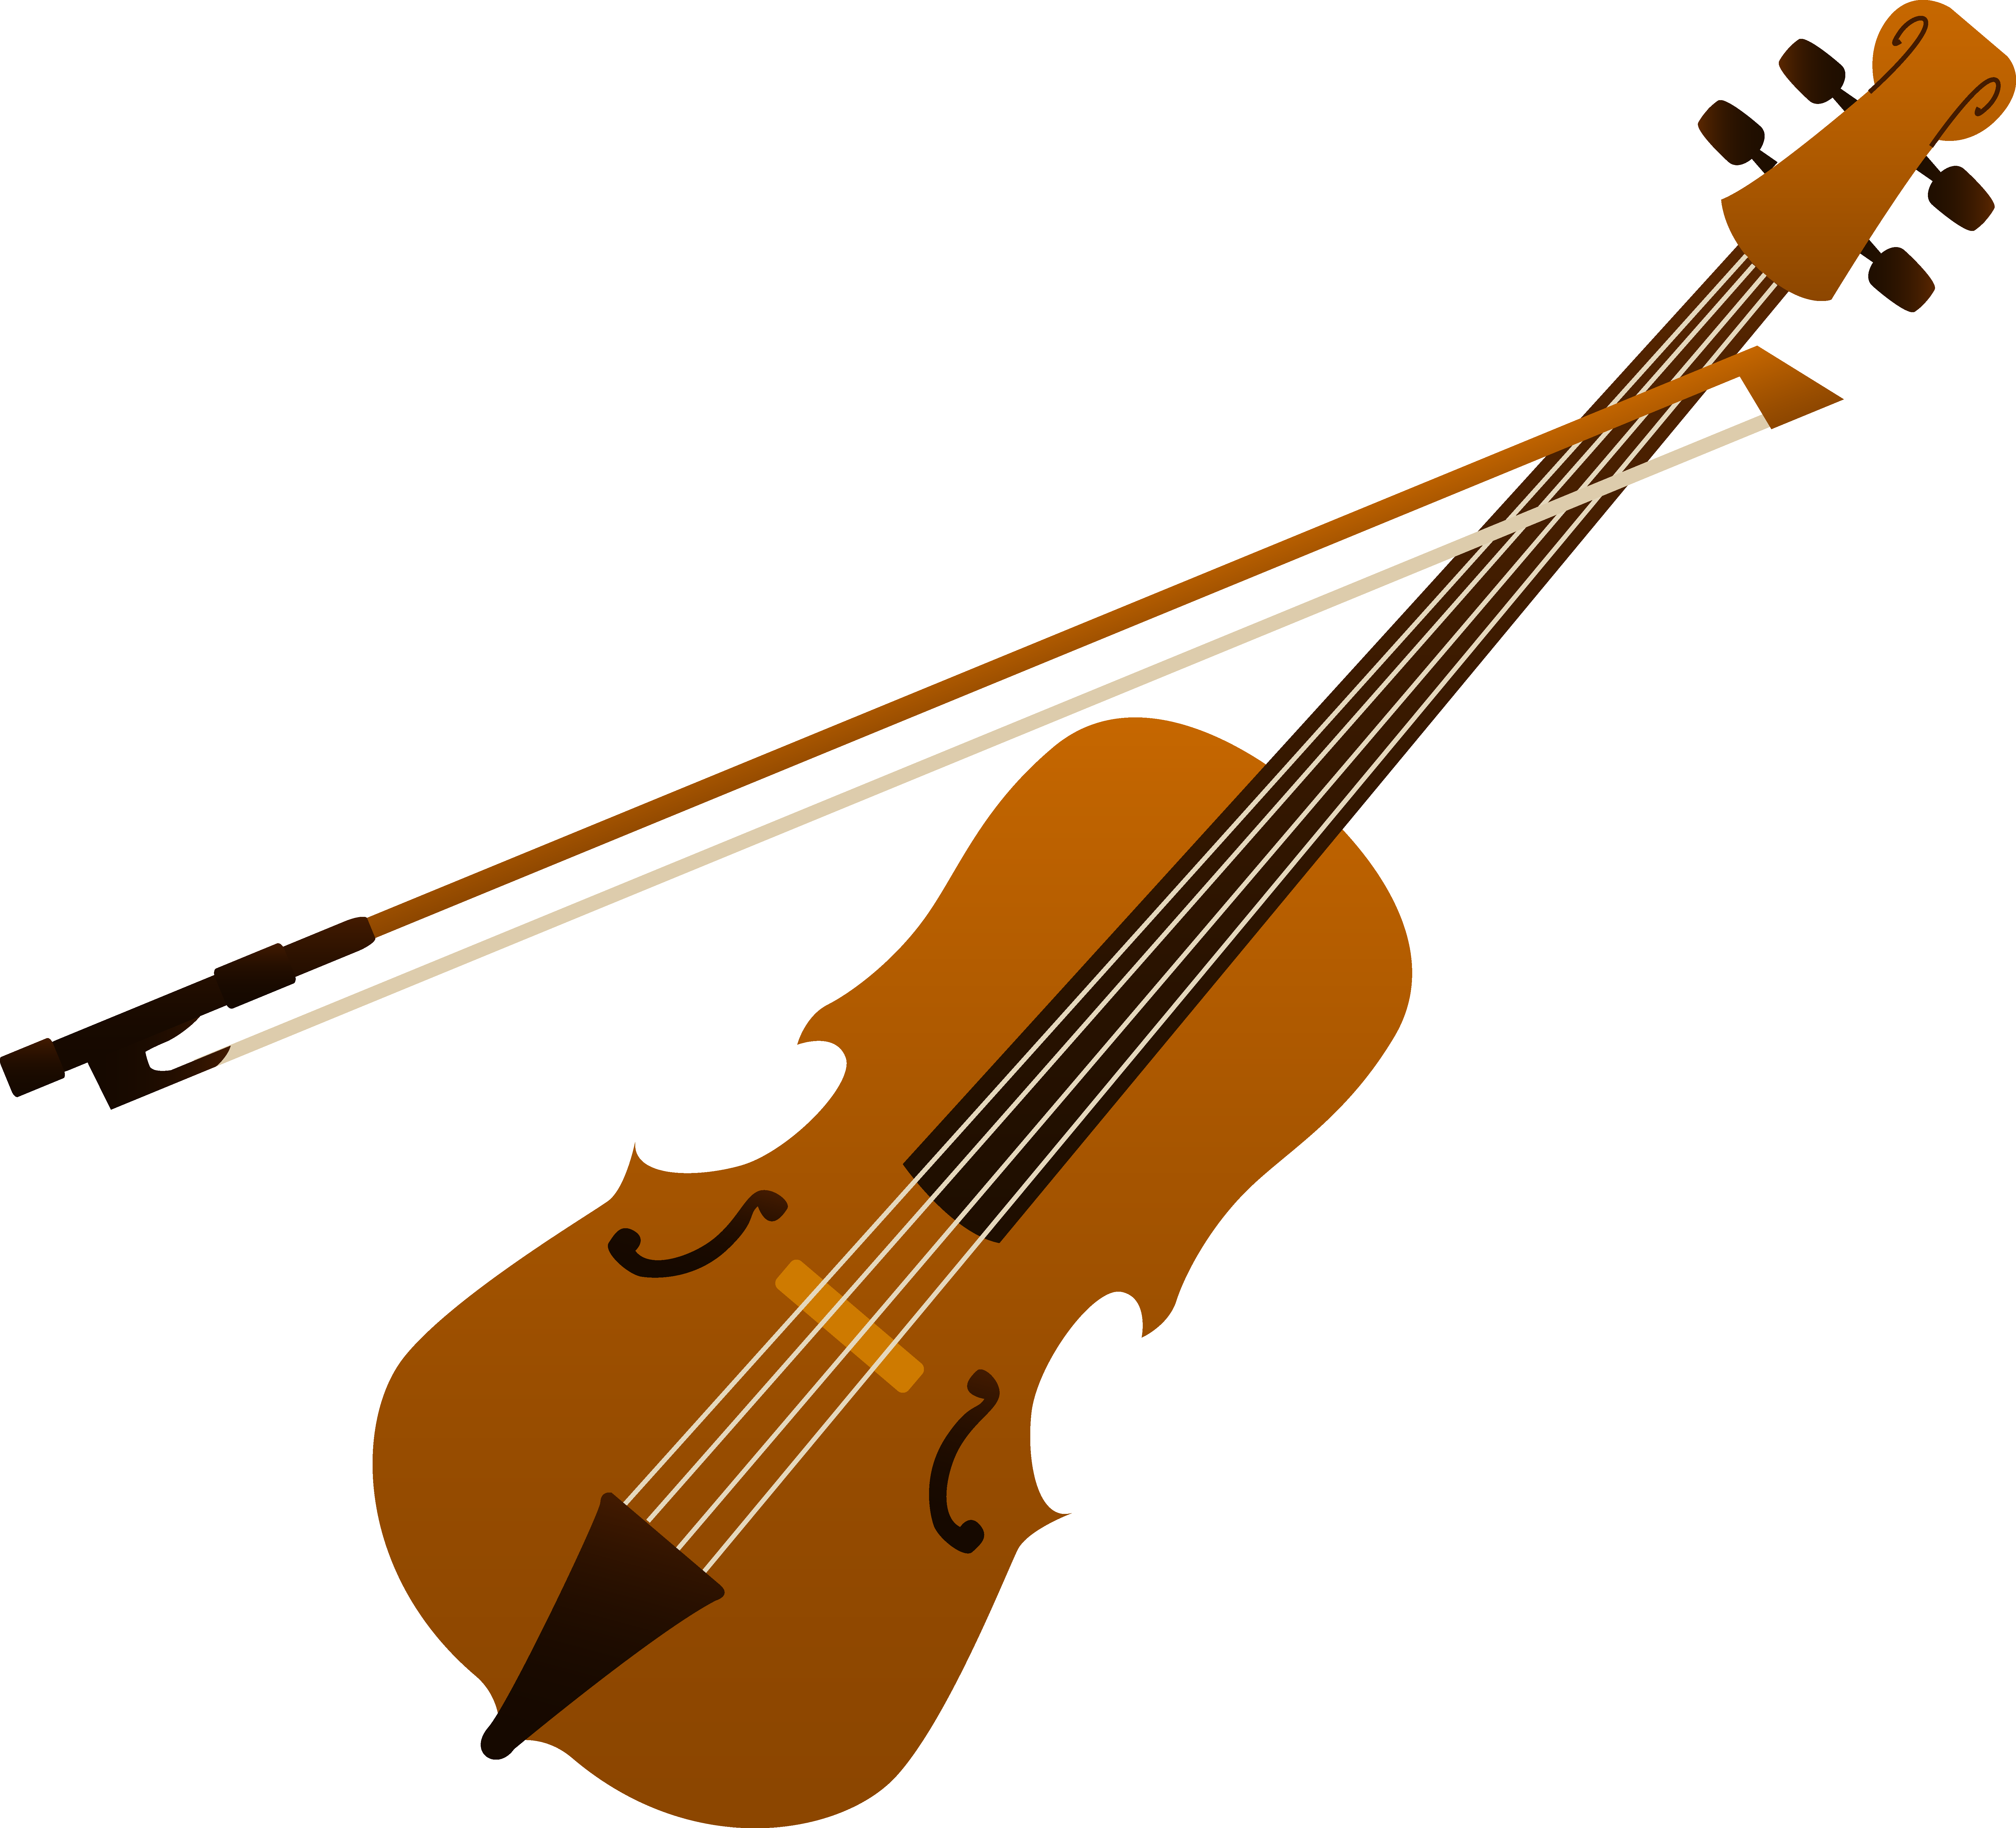 Clipart violin jpg freeuse library String Instruments Cliparts | Free download best String Instruments ... jpg freeuse library